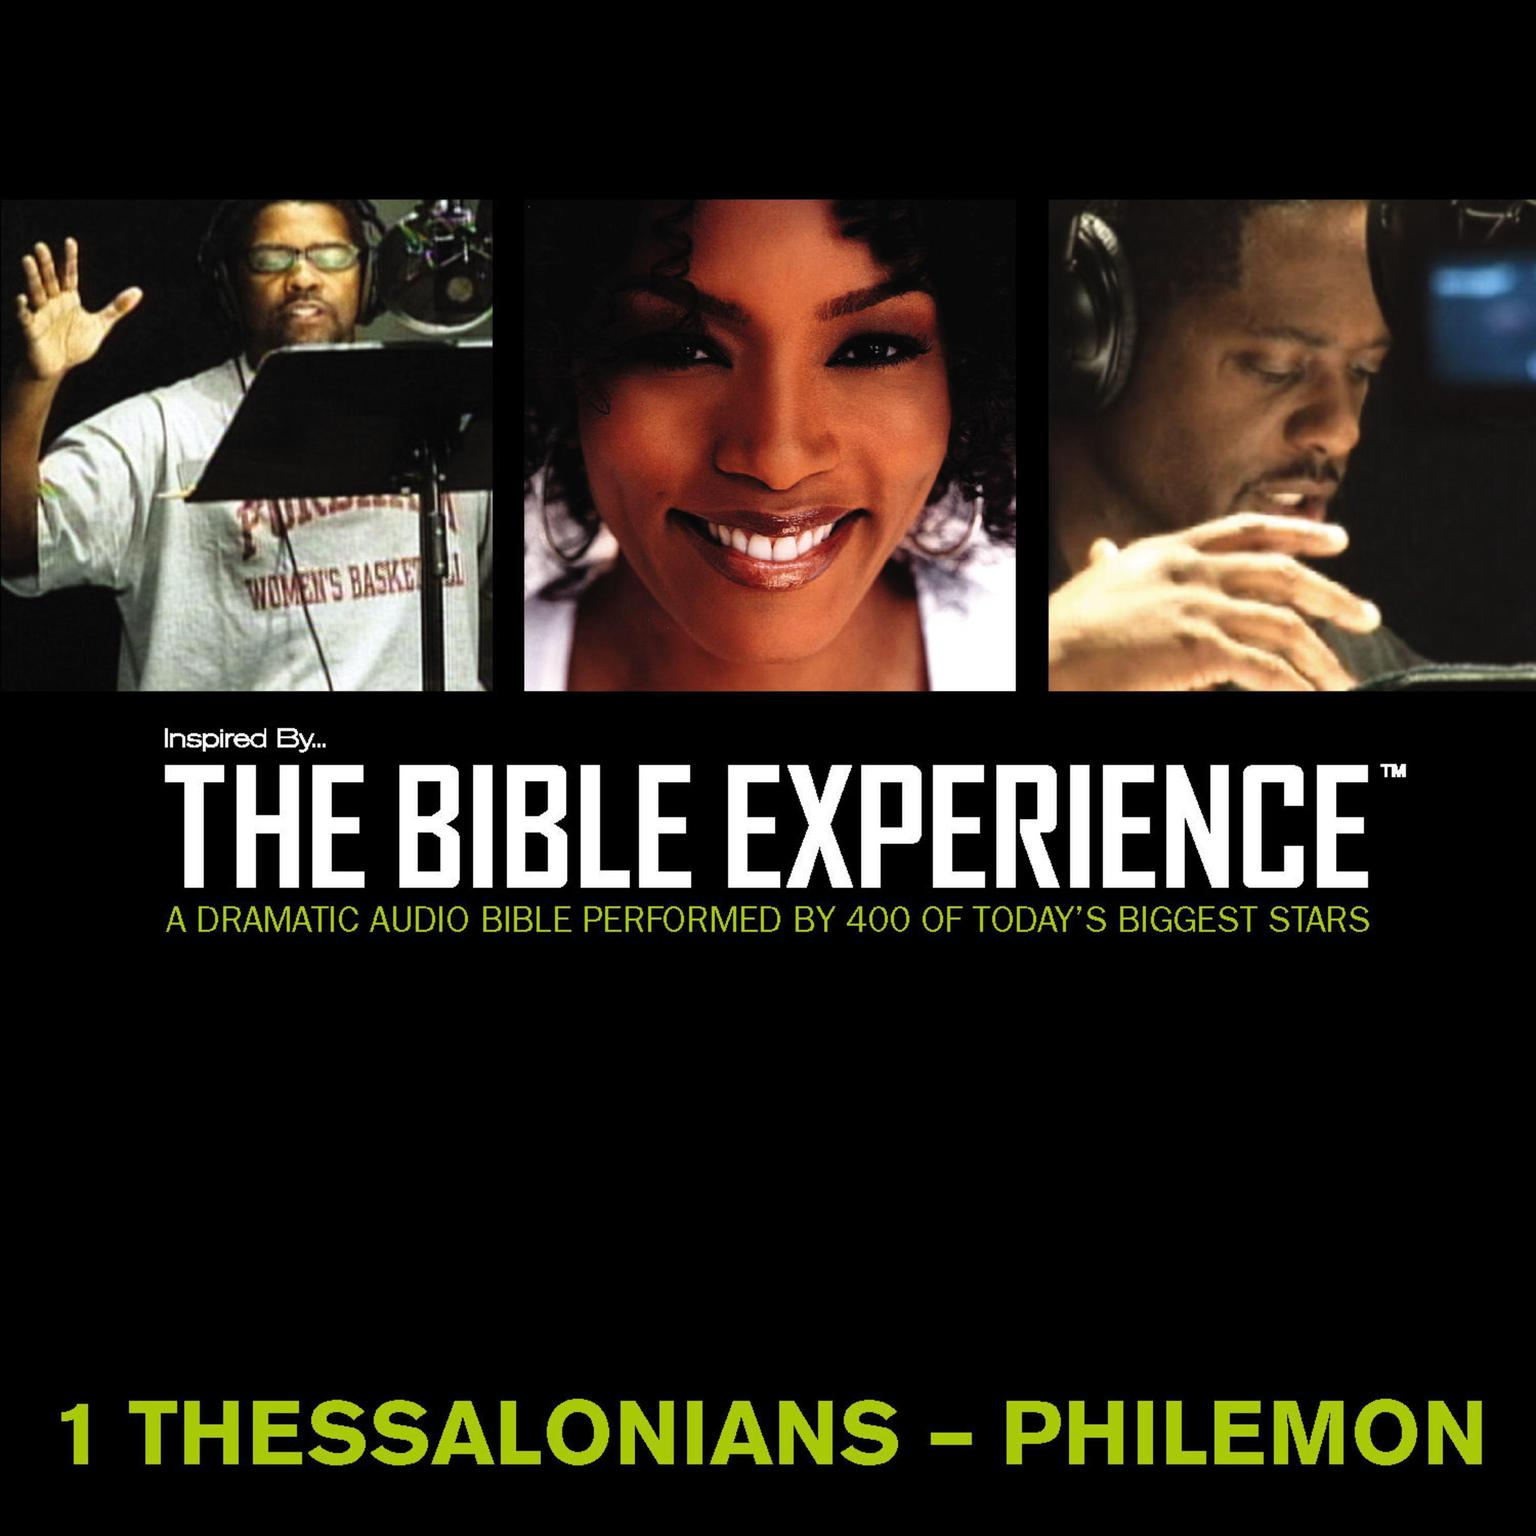 Printable TNIV, Inspired By … The Bible Experience: 1 Thessalonians - Philemon, Audio Download Audiobook Cover Art